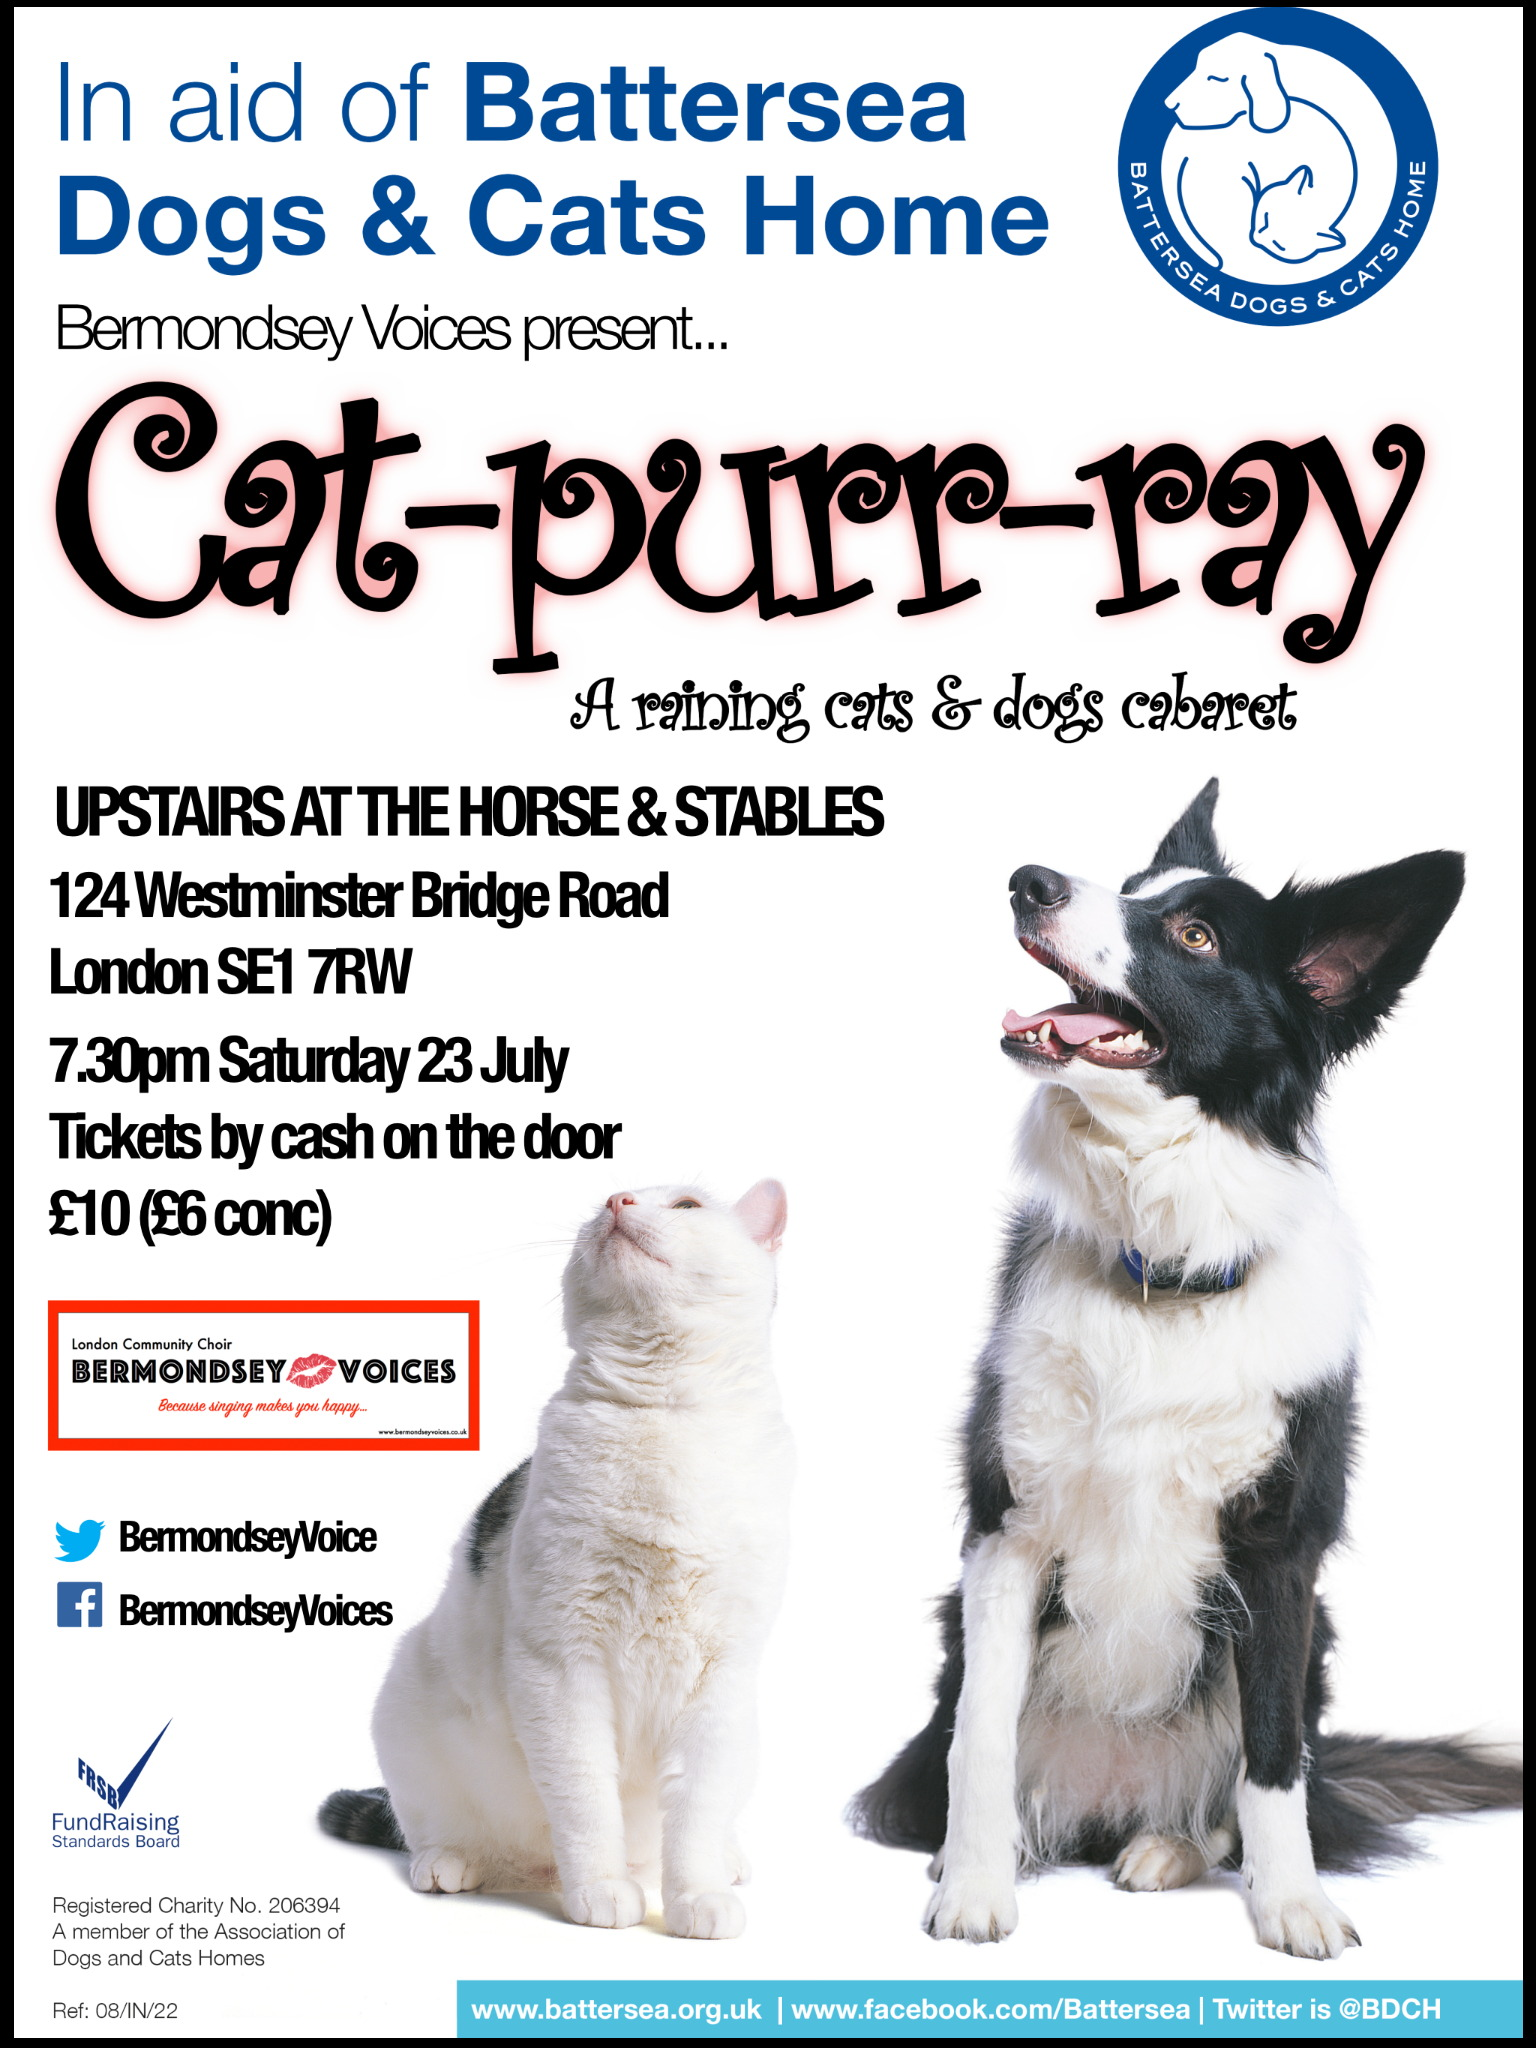 Bermondsey Voices present... Cat-purr-ray at